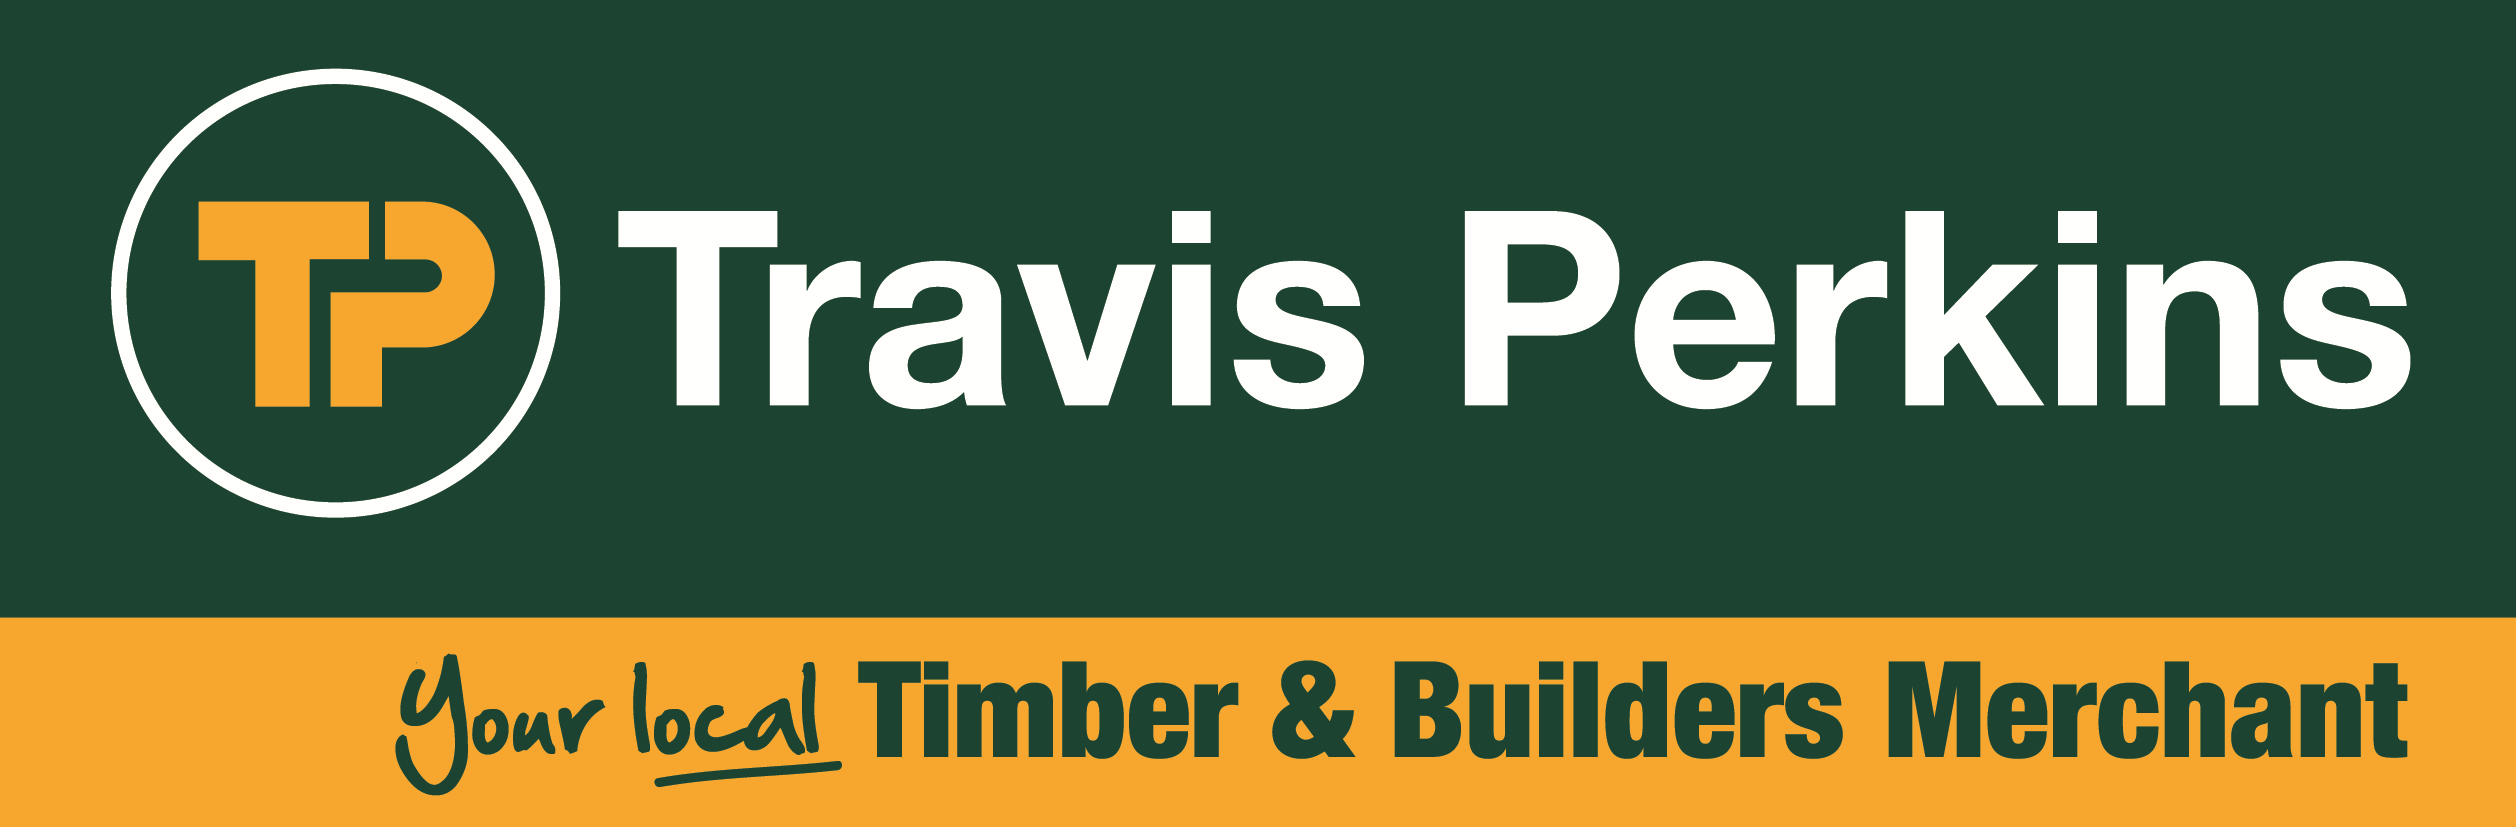 Travis-Perkins-logo1